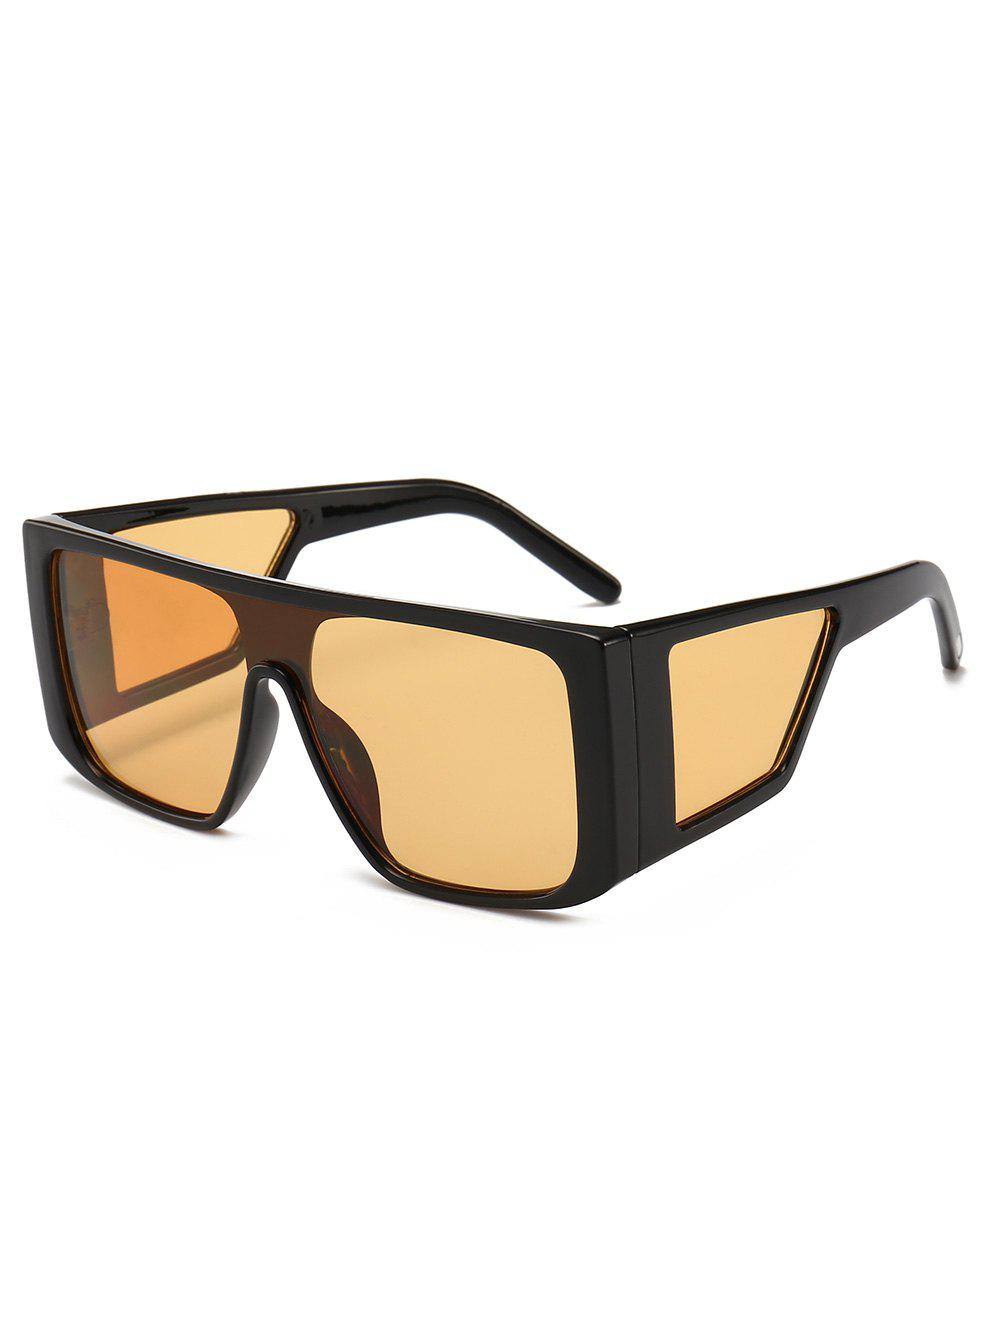 Sale Integrated Lens Square Frame PC Sunglasses